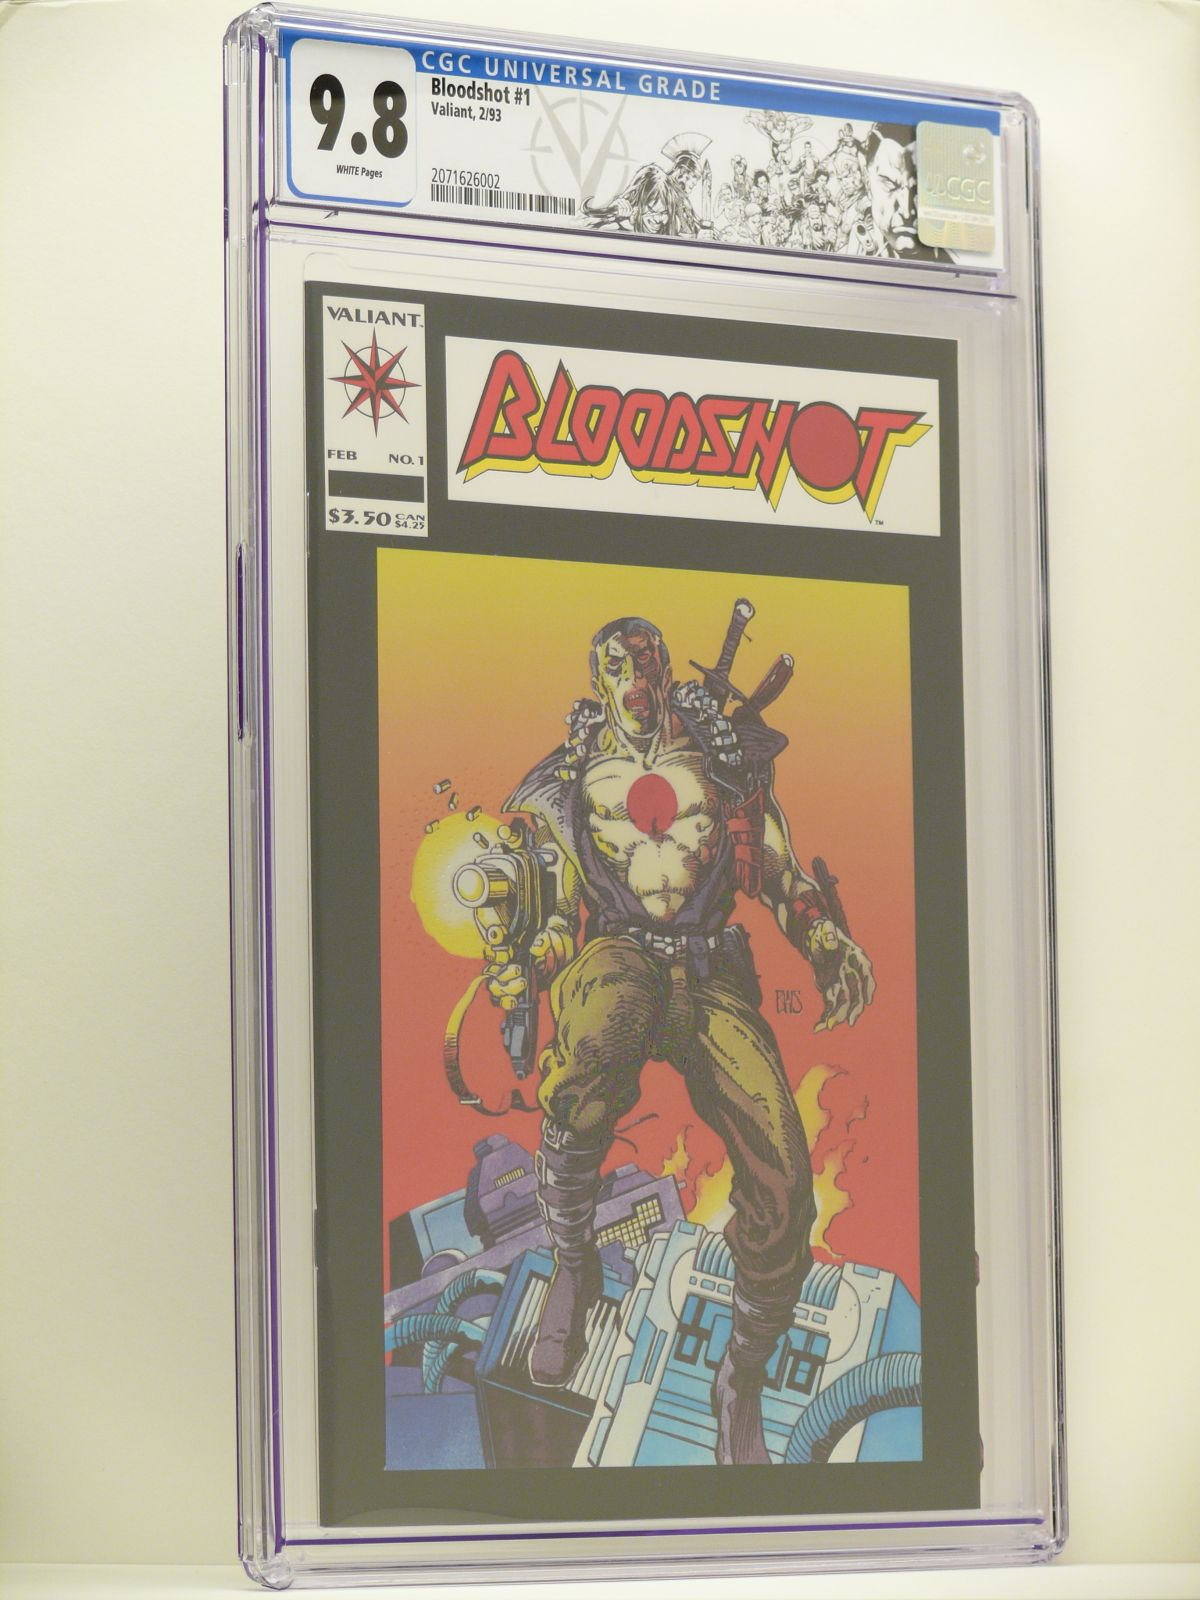 First Series Bloodshot 1 Cgc 9 8 At 47 00 Ebay Auction Ending Today Comics Market Sales Advertising Ebay Dealers Etc Cgc Comic Book Collectors Chat Boards